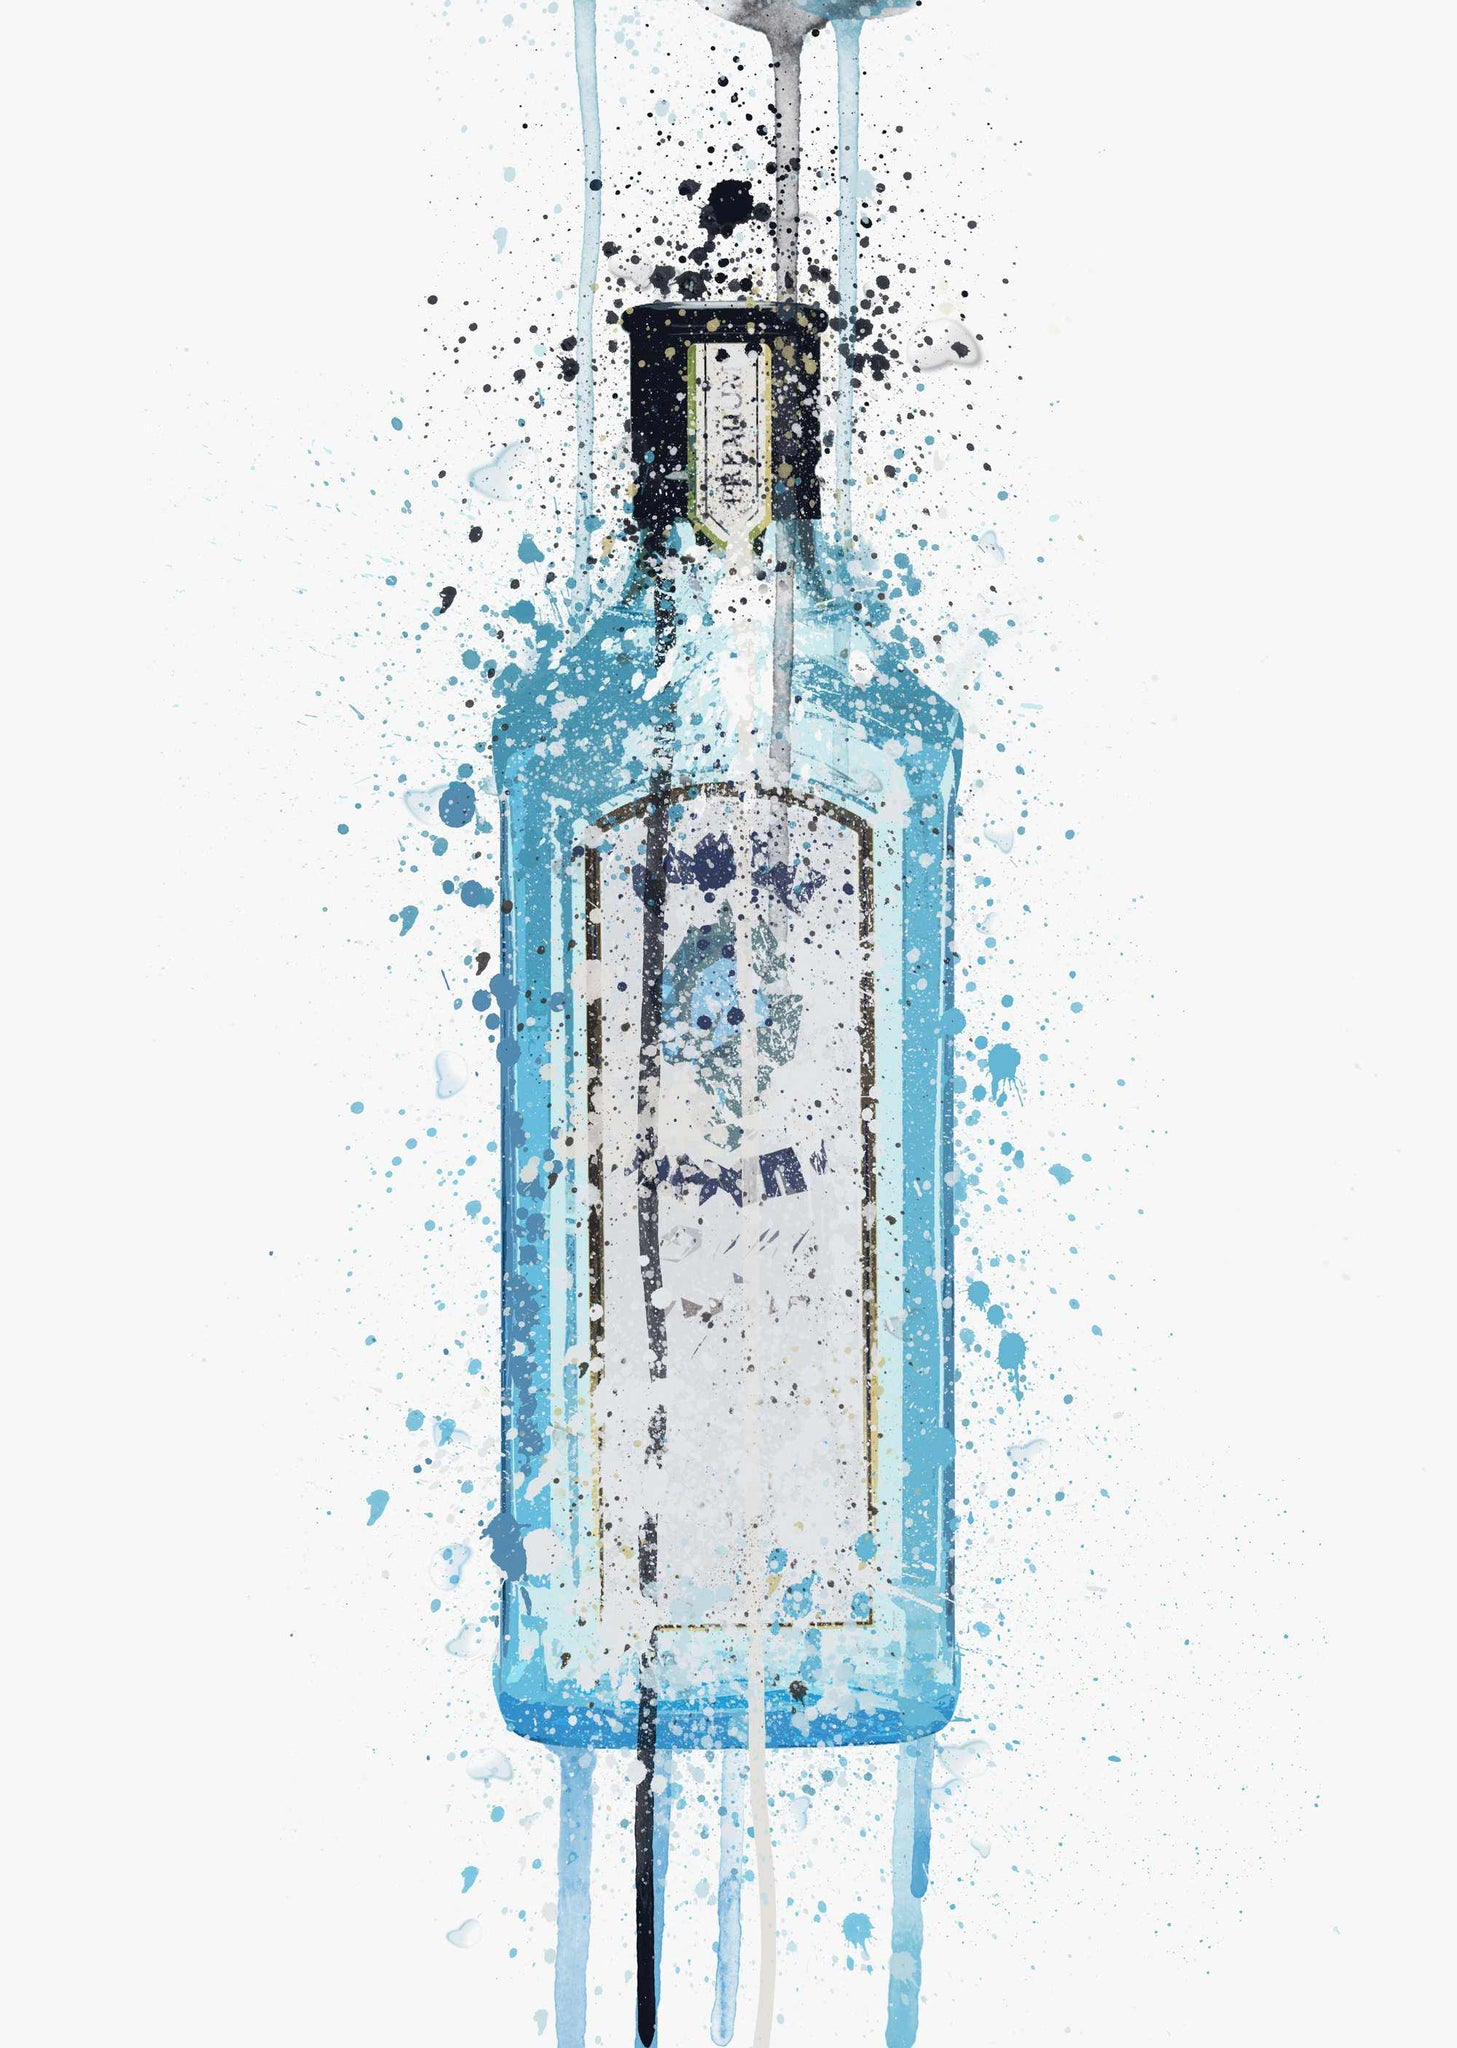 Gin Bottle Wall Art Print 'Ocean Blue'